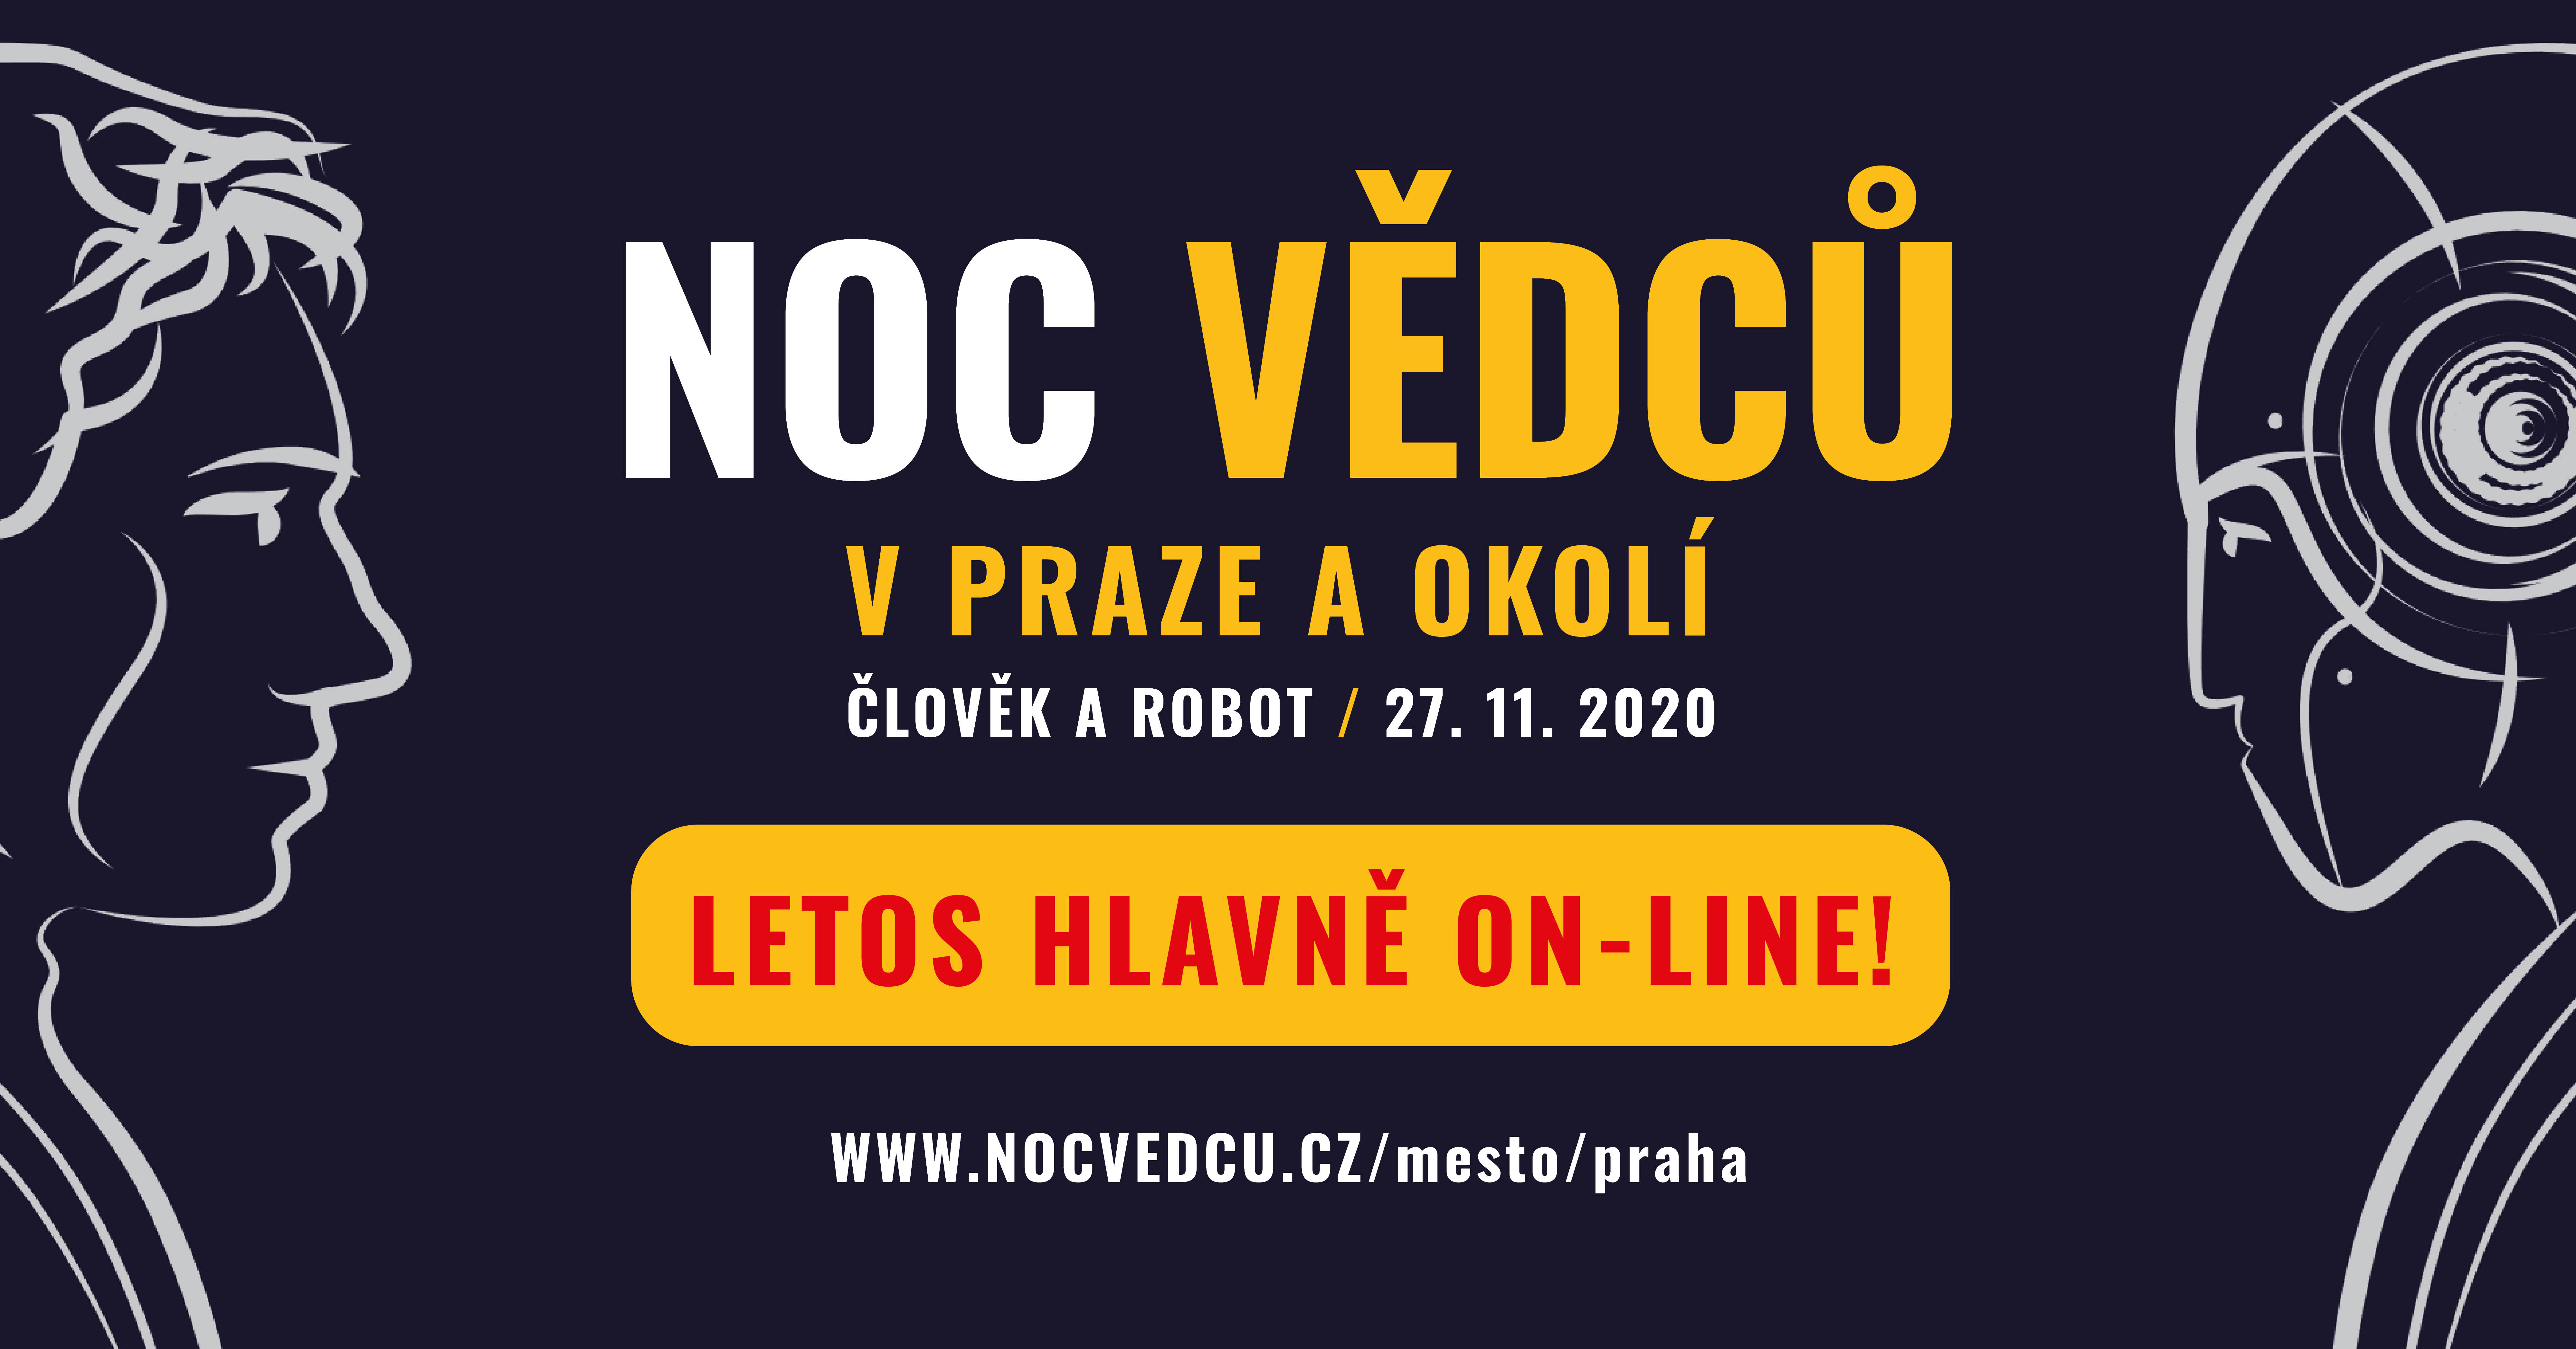 NV2020_-_PRG_-_UVODKA_FB_2_1.jpg